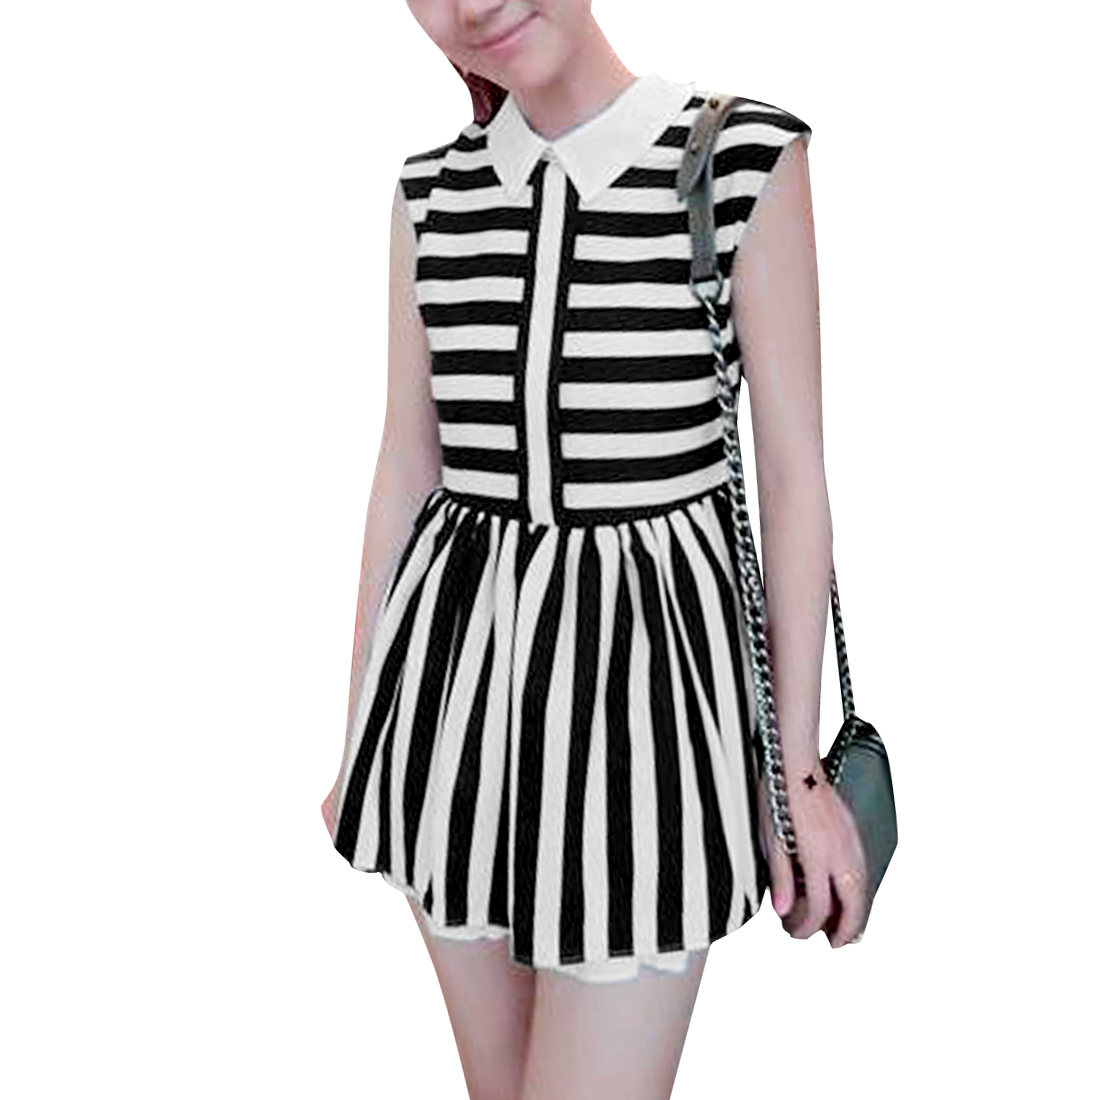 Ladies Point Collar Sleeveless Black White Stripes Top XS